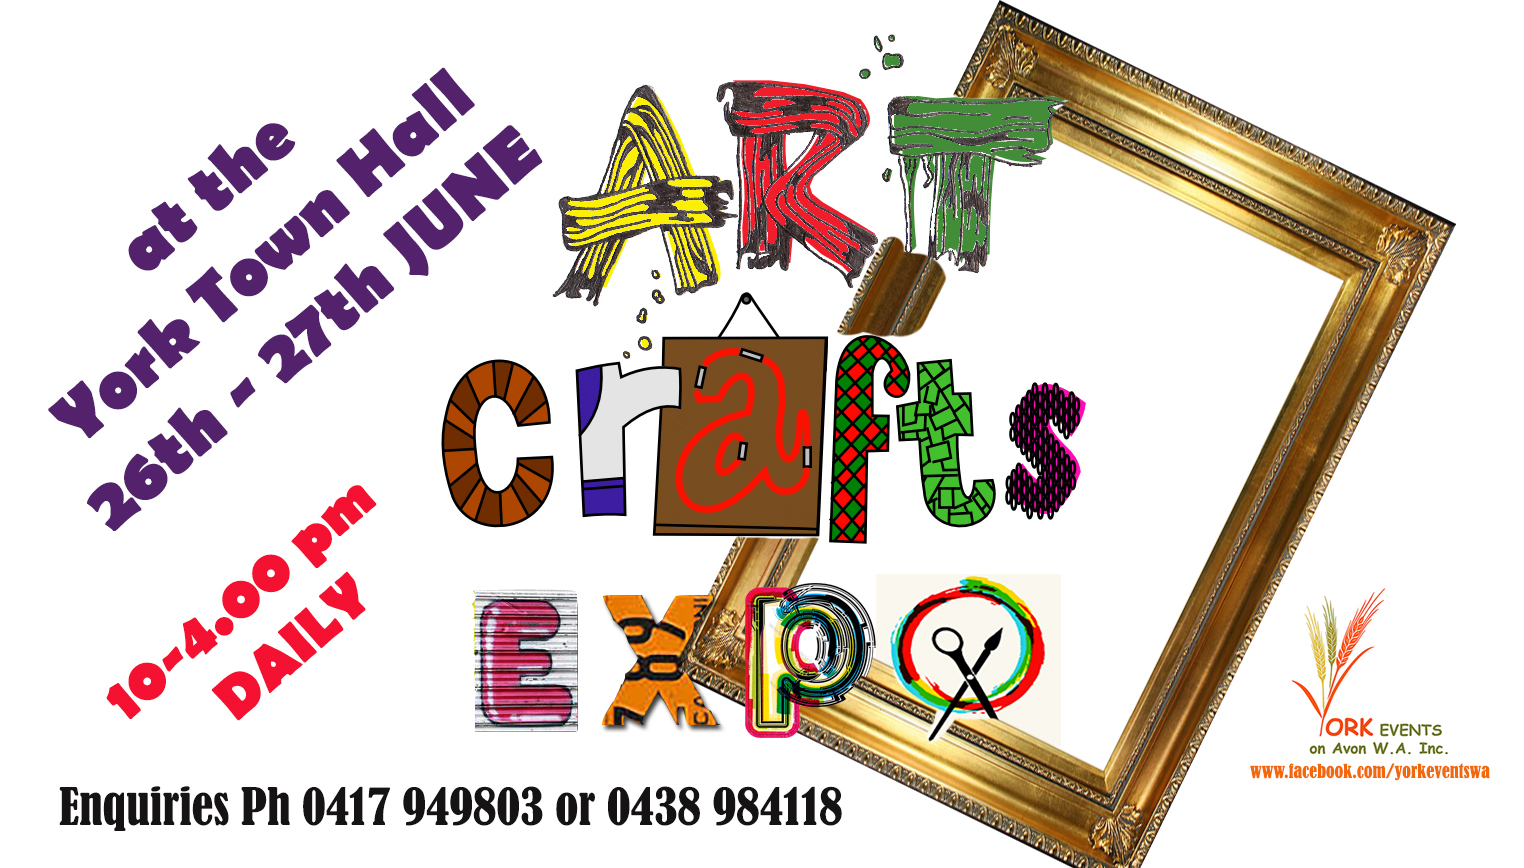 Arts & Crafts Expo